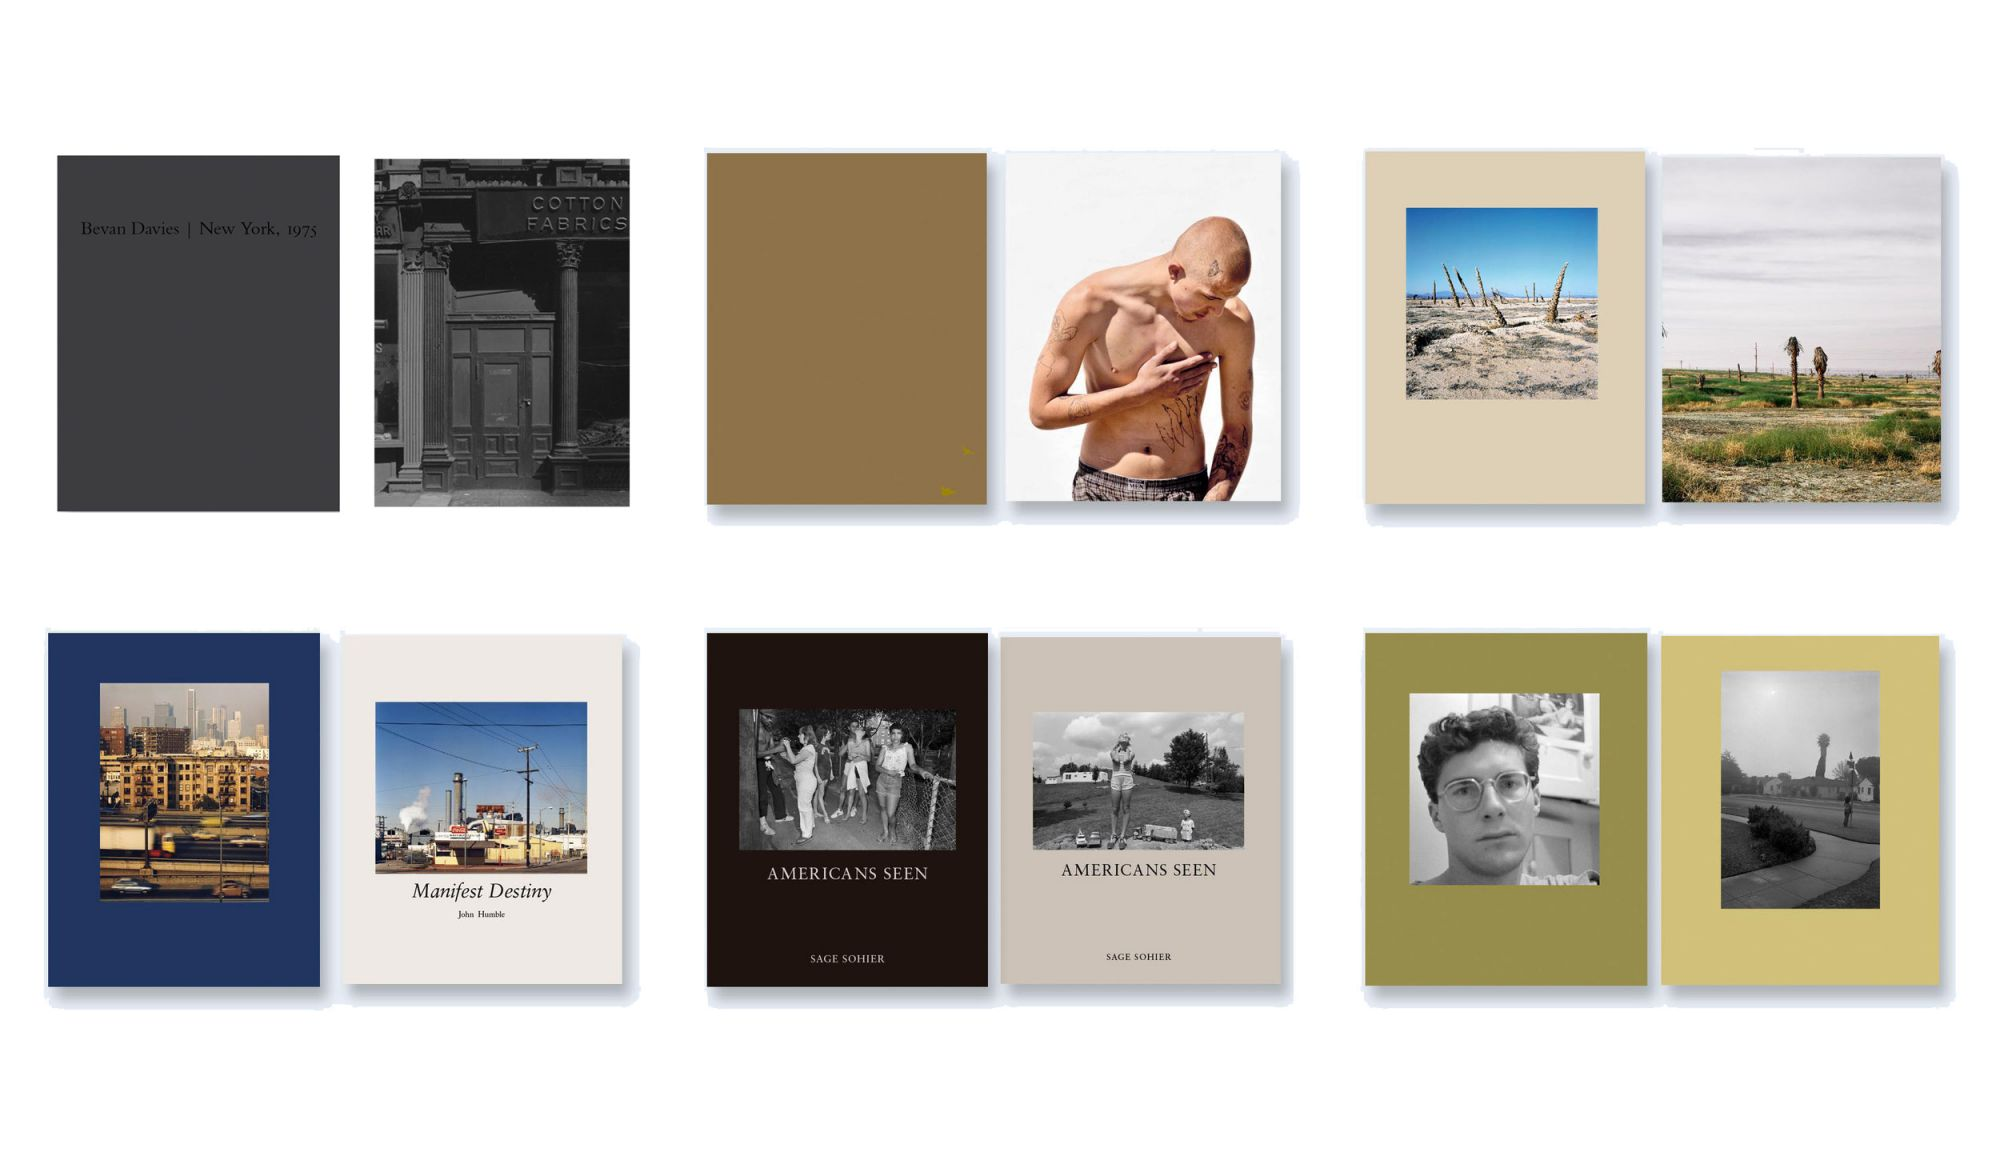 NZ Library: Set #3 (Six Volumes), Limited Edition [SIGNED]. Bevan Davies: New York, 1975, Katy Grannan: Hundreds of Sparrows: Volume 1, Anthony Hernandez: Discarded, John Humble: Manifest Destiny, Sage Sohier: Americans Seen, Mark Steinmetz: Angel City West: Volume 2